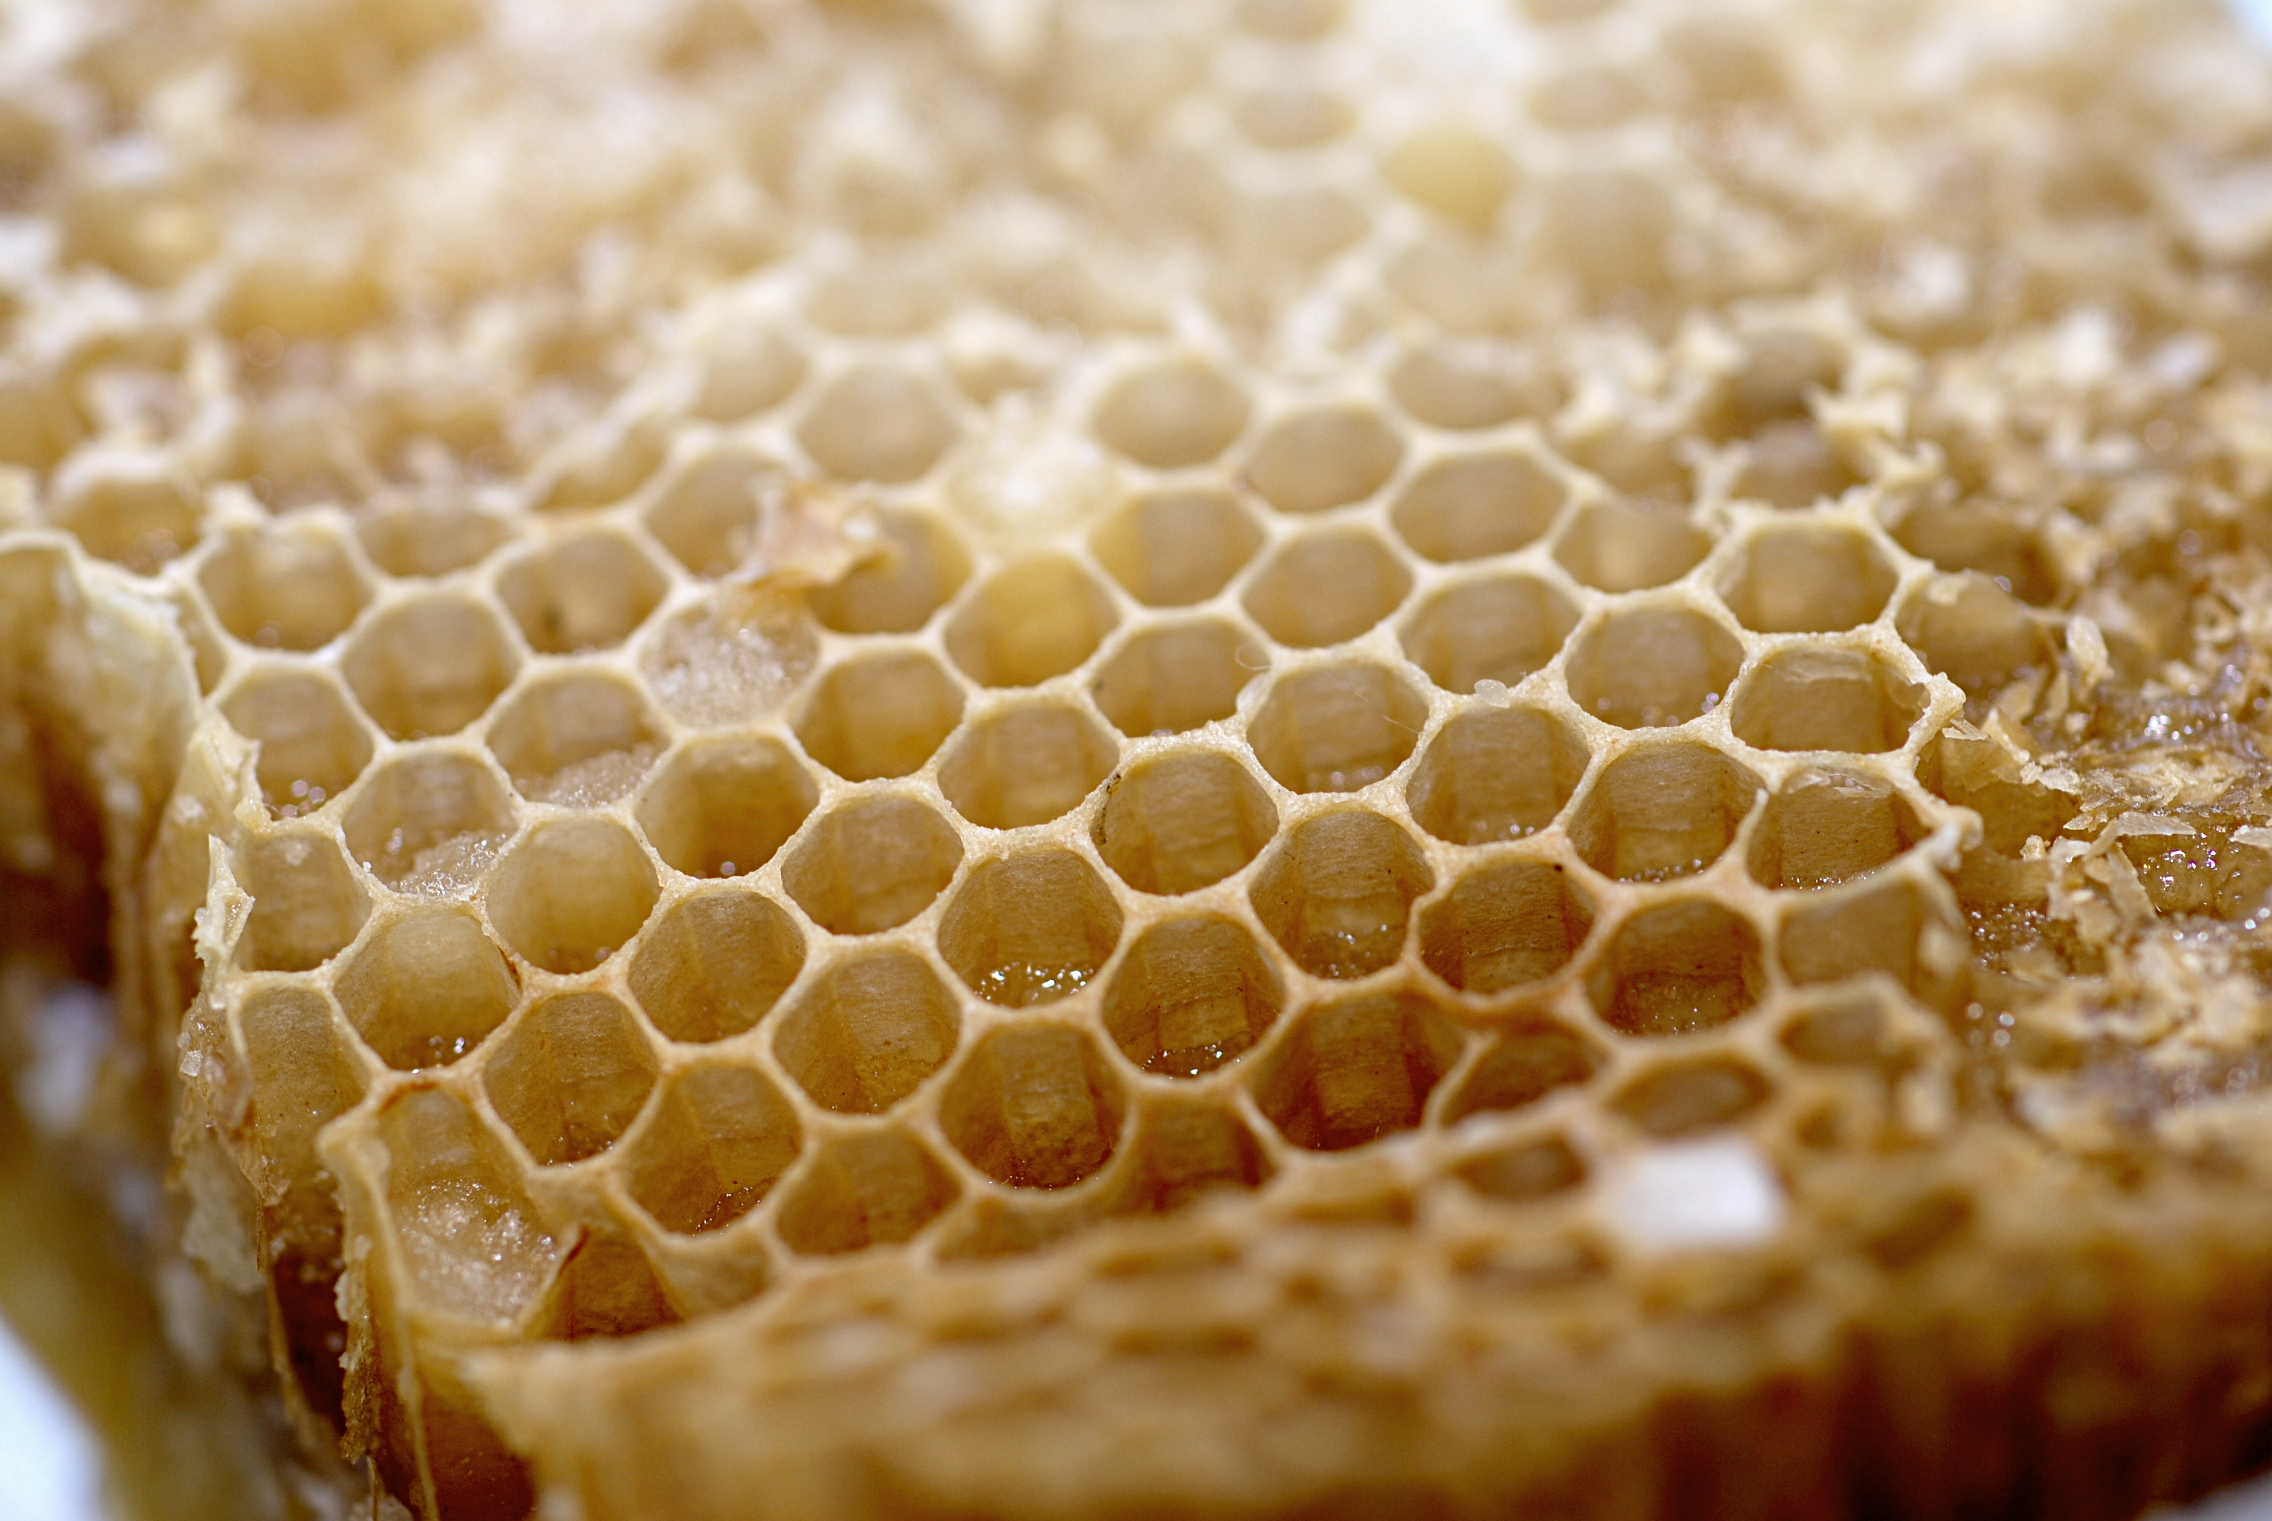 effects on honey bees research paper